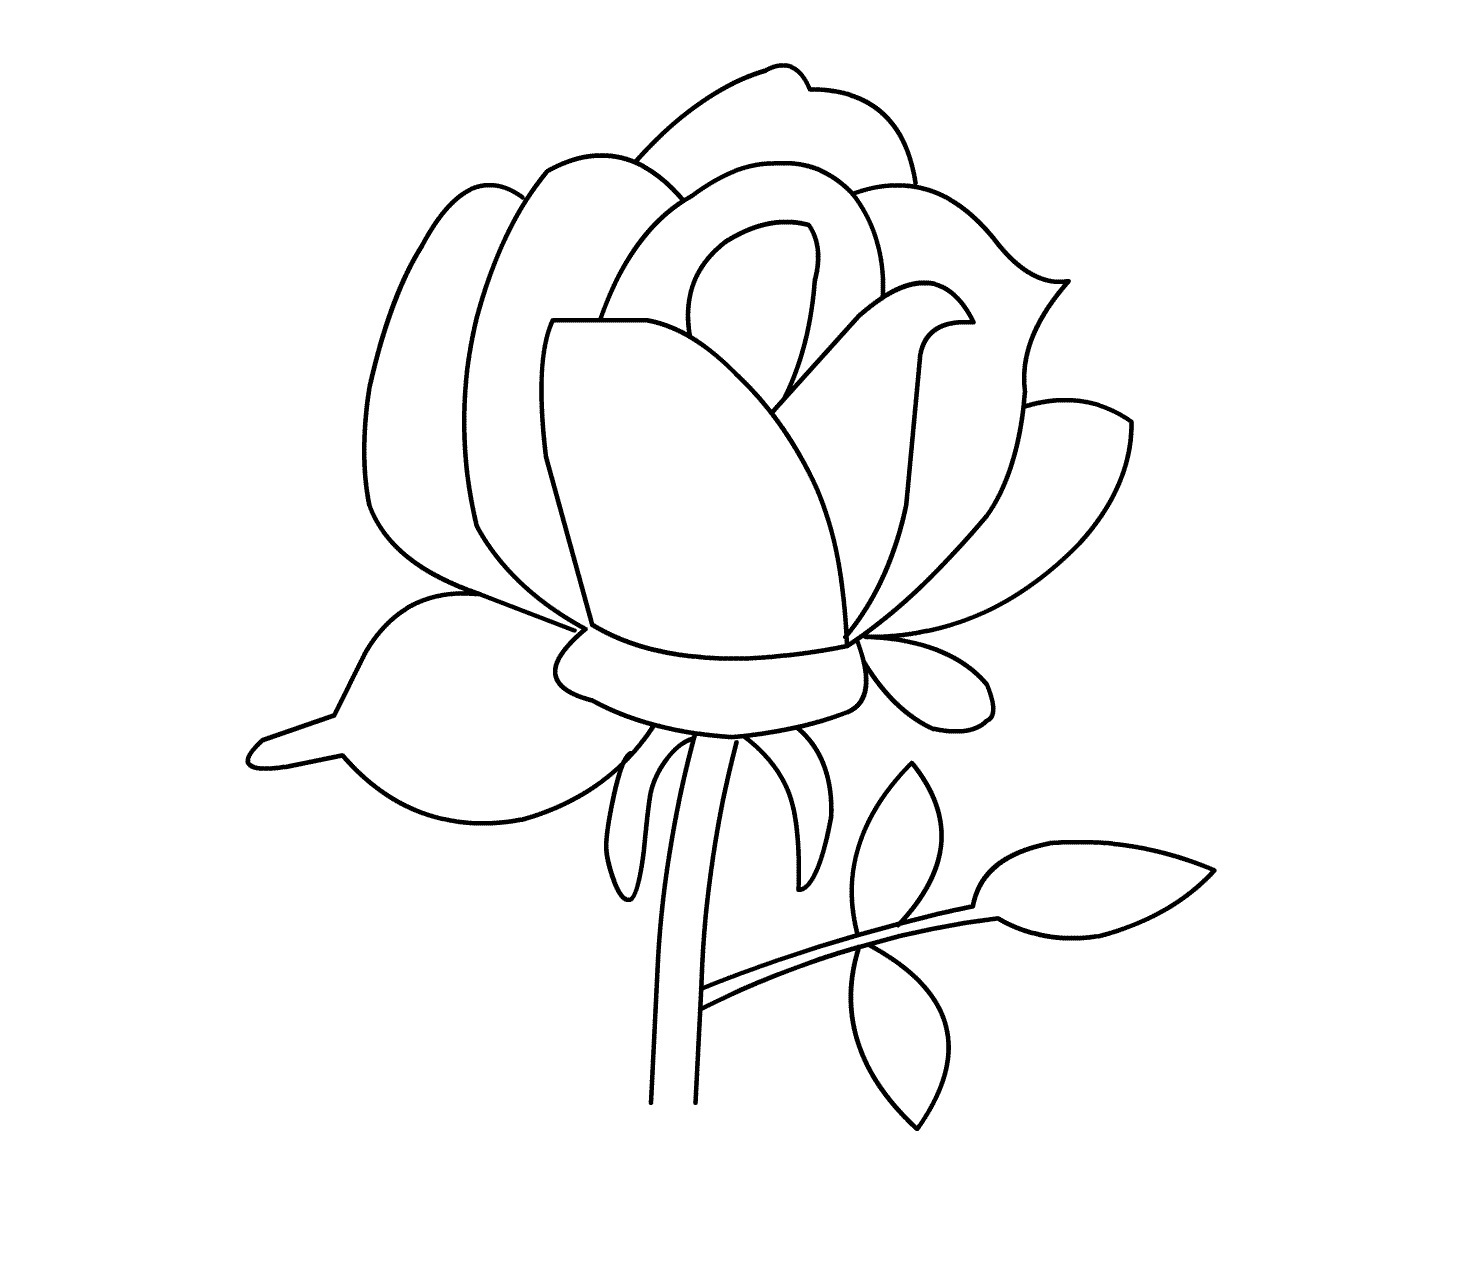 rose coloring book page garden of rose coloring page download print online page book coloring rose